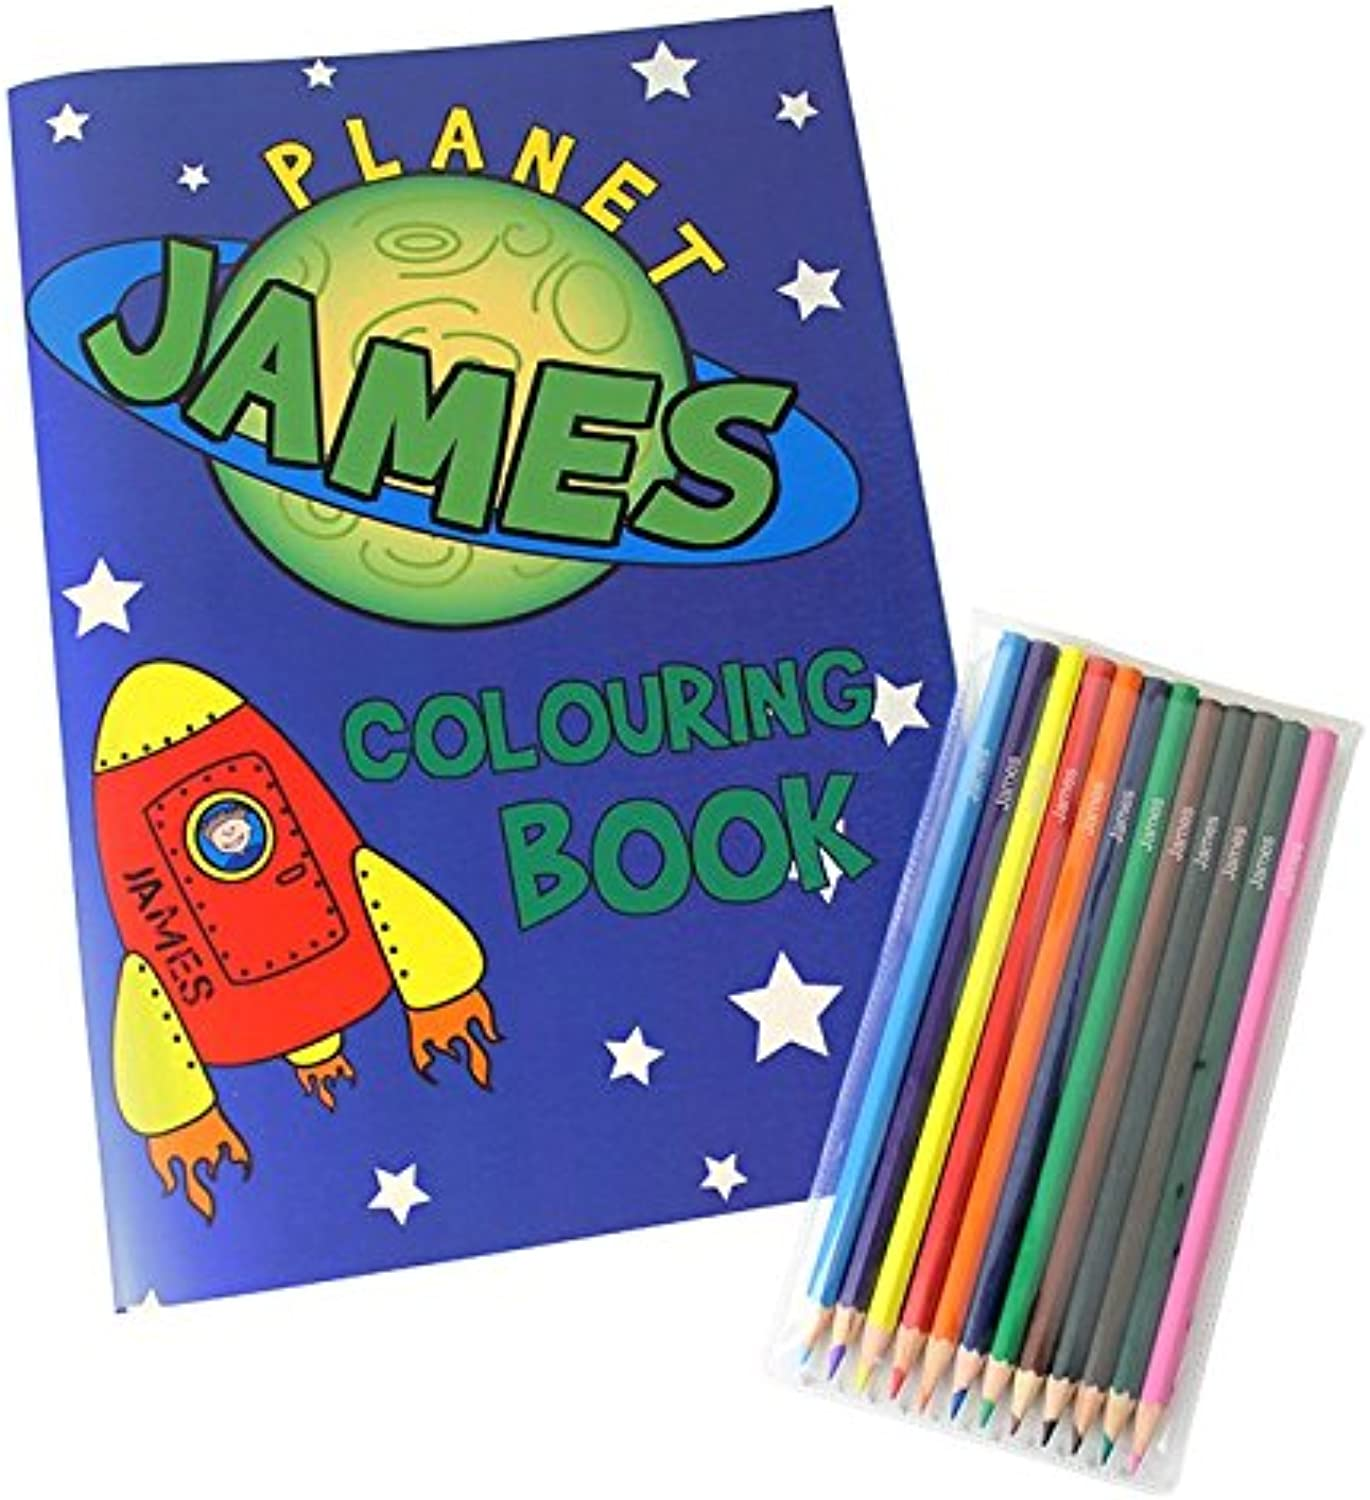 Personalised Space Colouring Set - Personalised - Colouring Pen Set Set Set - Books & Stationery B01DYHL7Q6   Jeder beschriebene Artikel ist verfügbar  2e7f21